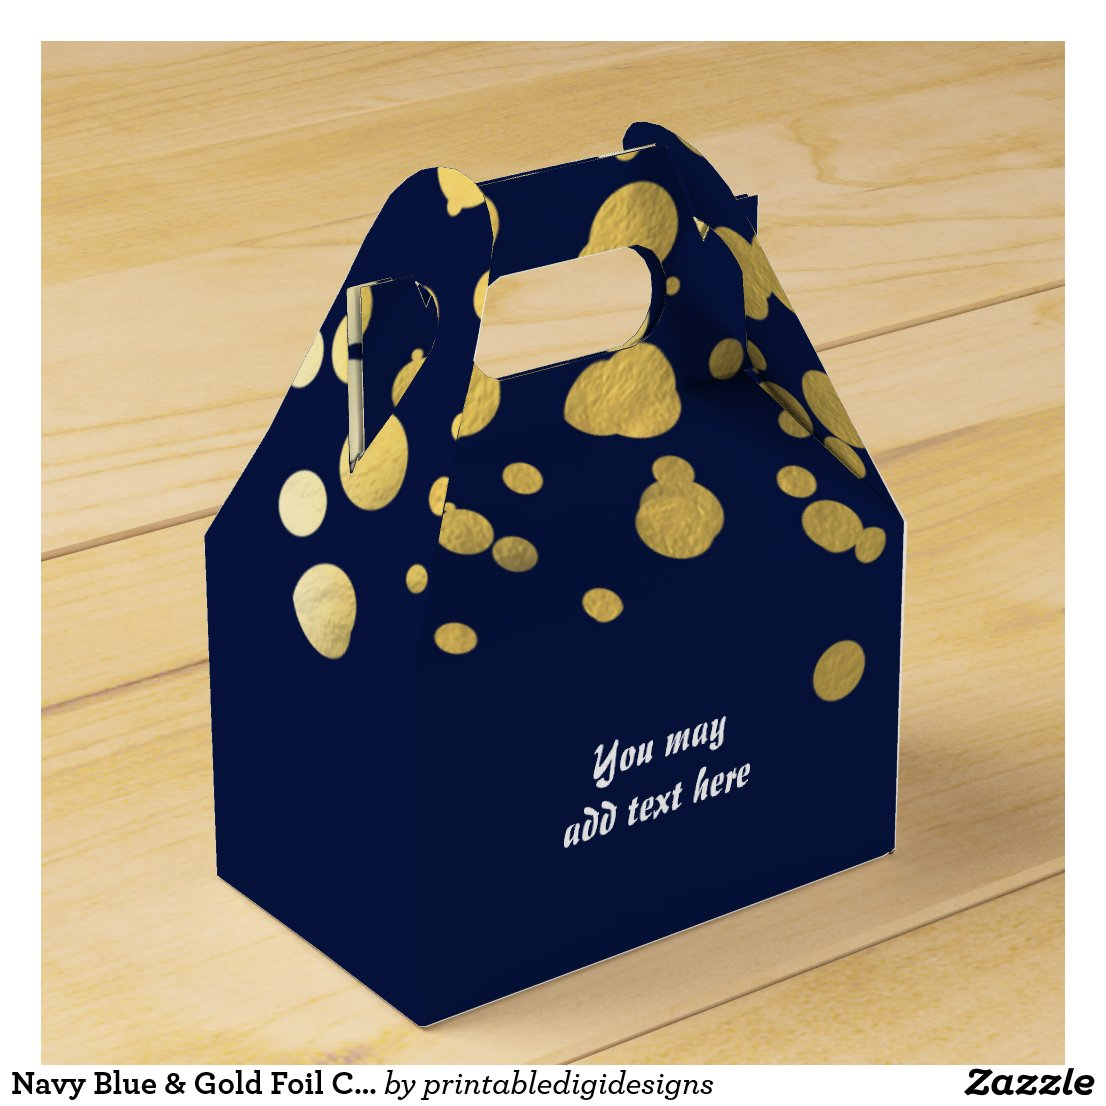 Navy Blue & Gold Foil Confetti Party Favour Boxes